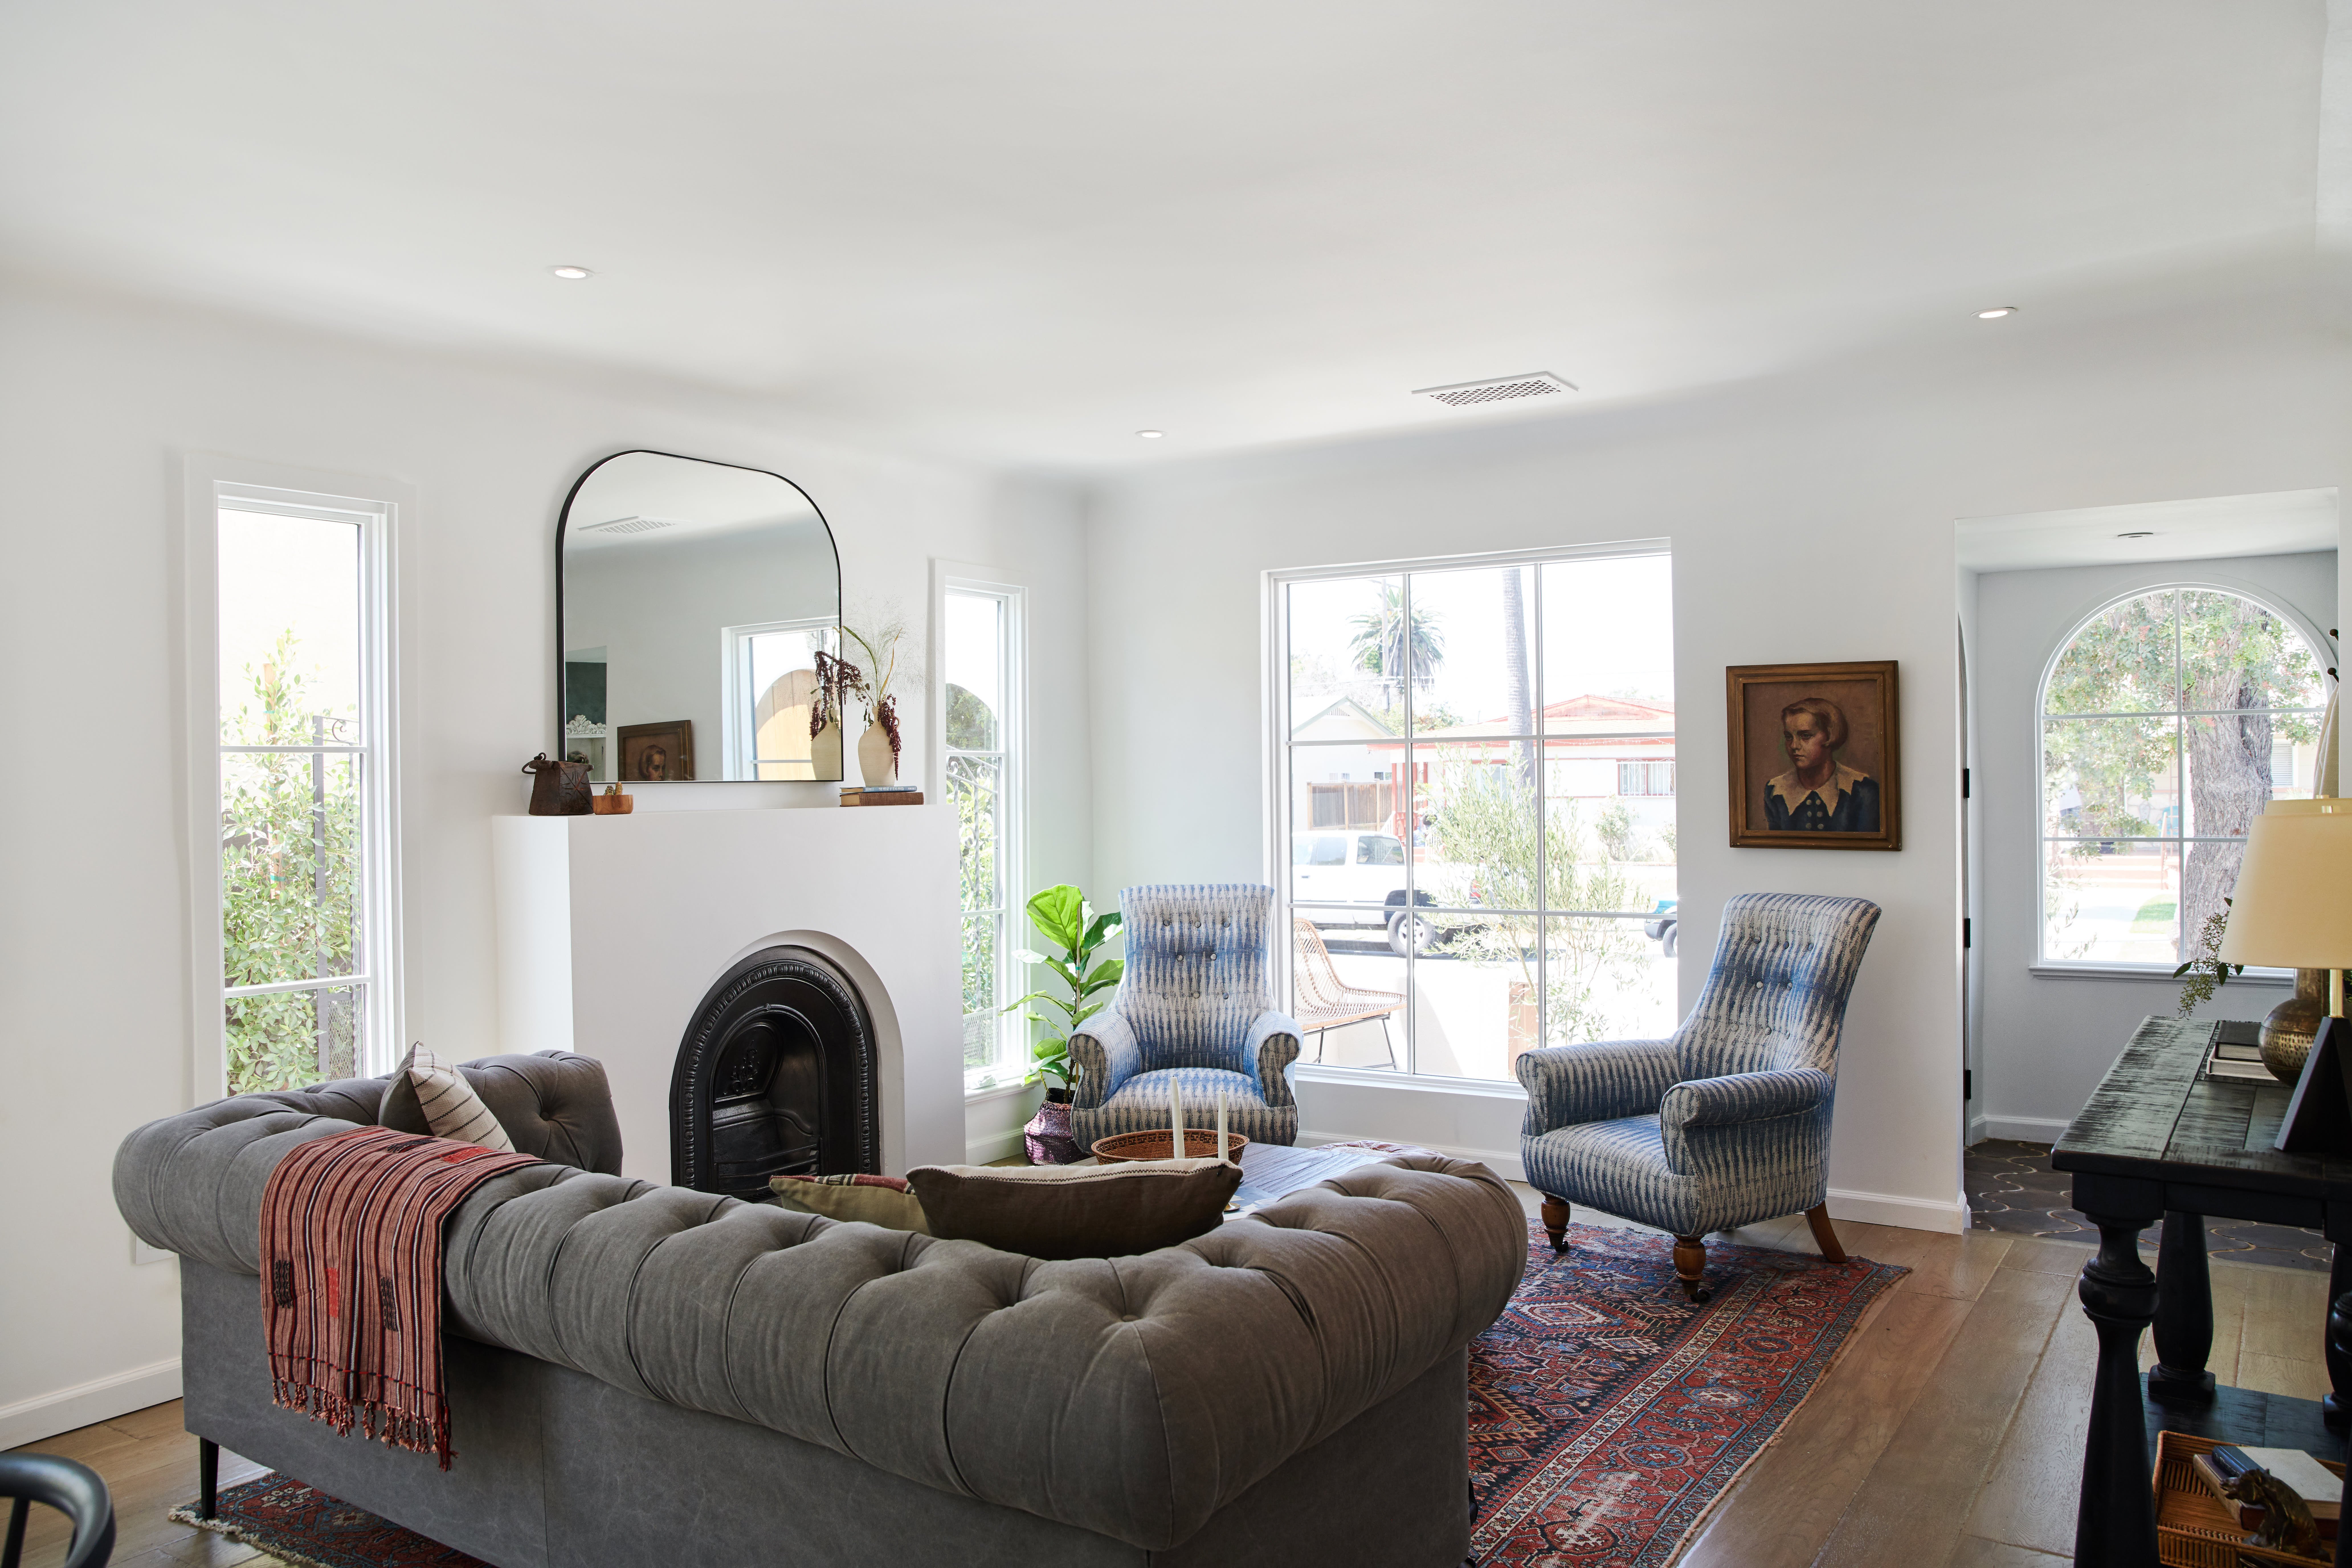 Home Tour A Spanish Bungalow Remodel Inspired By Travel Sunset Sunset Magazine